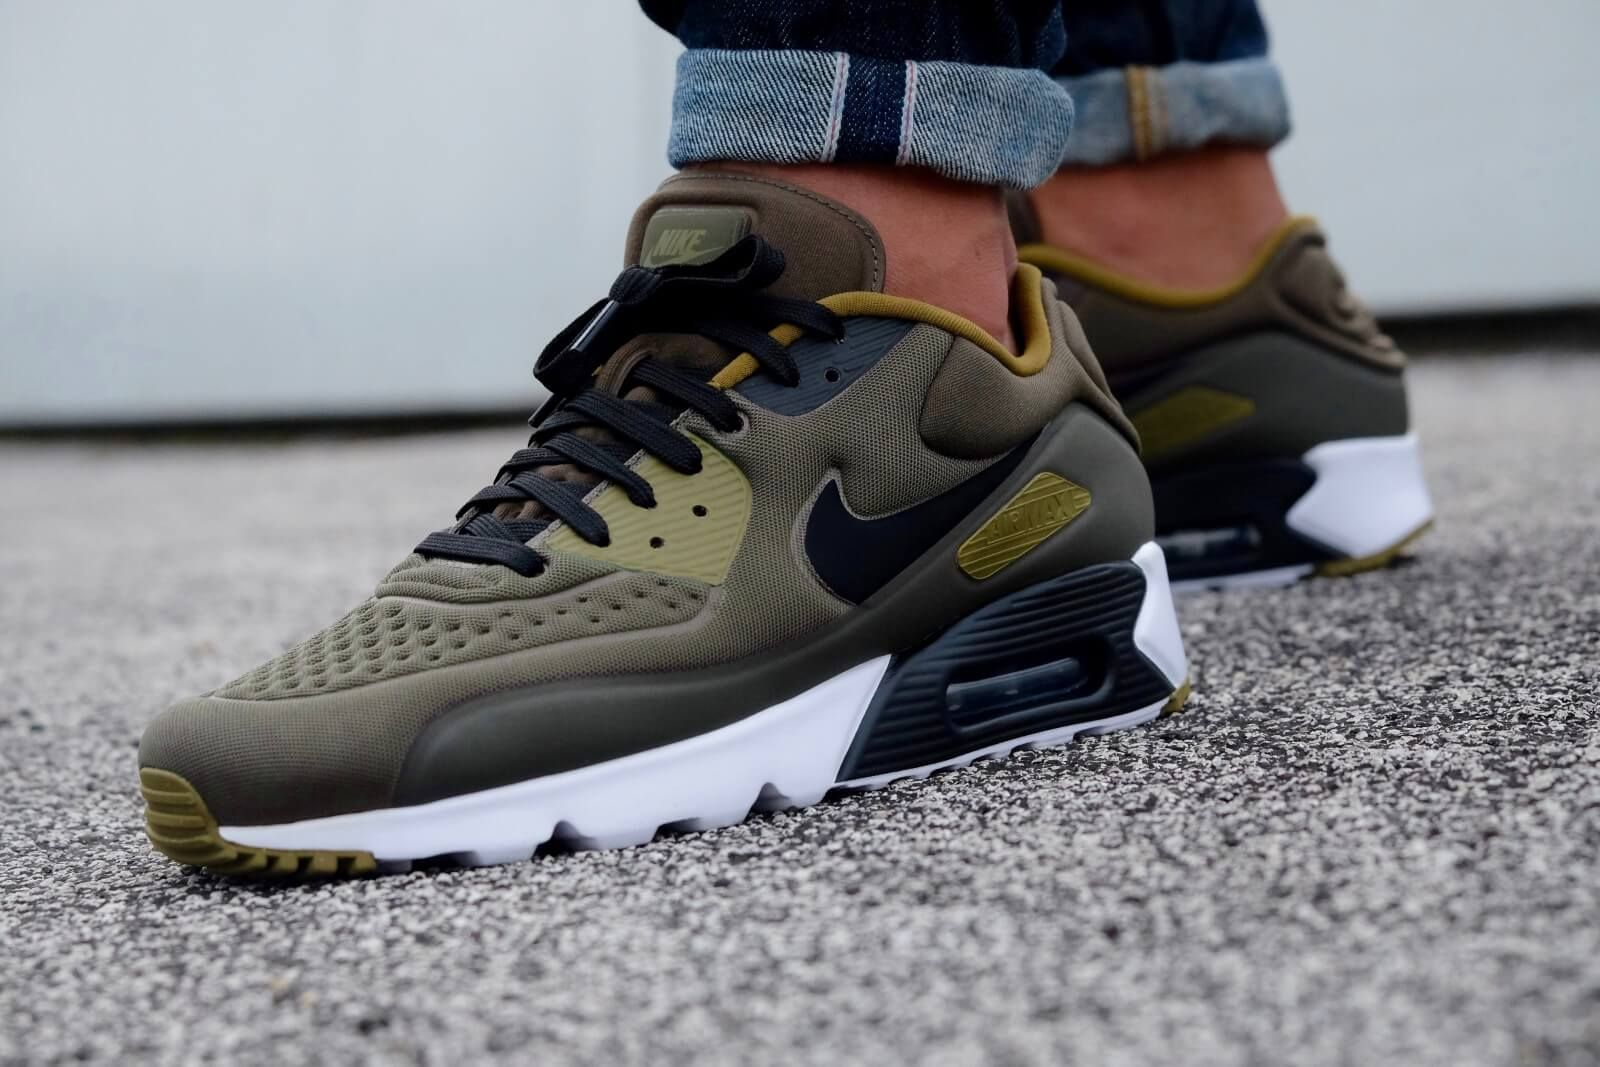 pretty nice adf87 57a39 Nike Air Max 90 Ultra Special Edition Cargo Khaki  Black-Olive Flak-White -  845039-300   Sneaker High   Air max sneakers, Nike air max, Basket nike